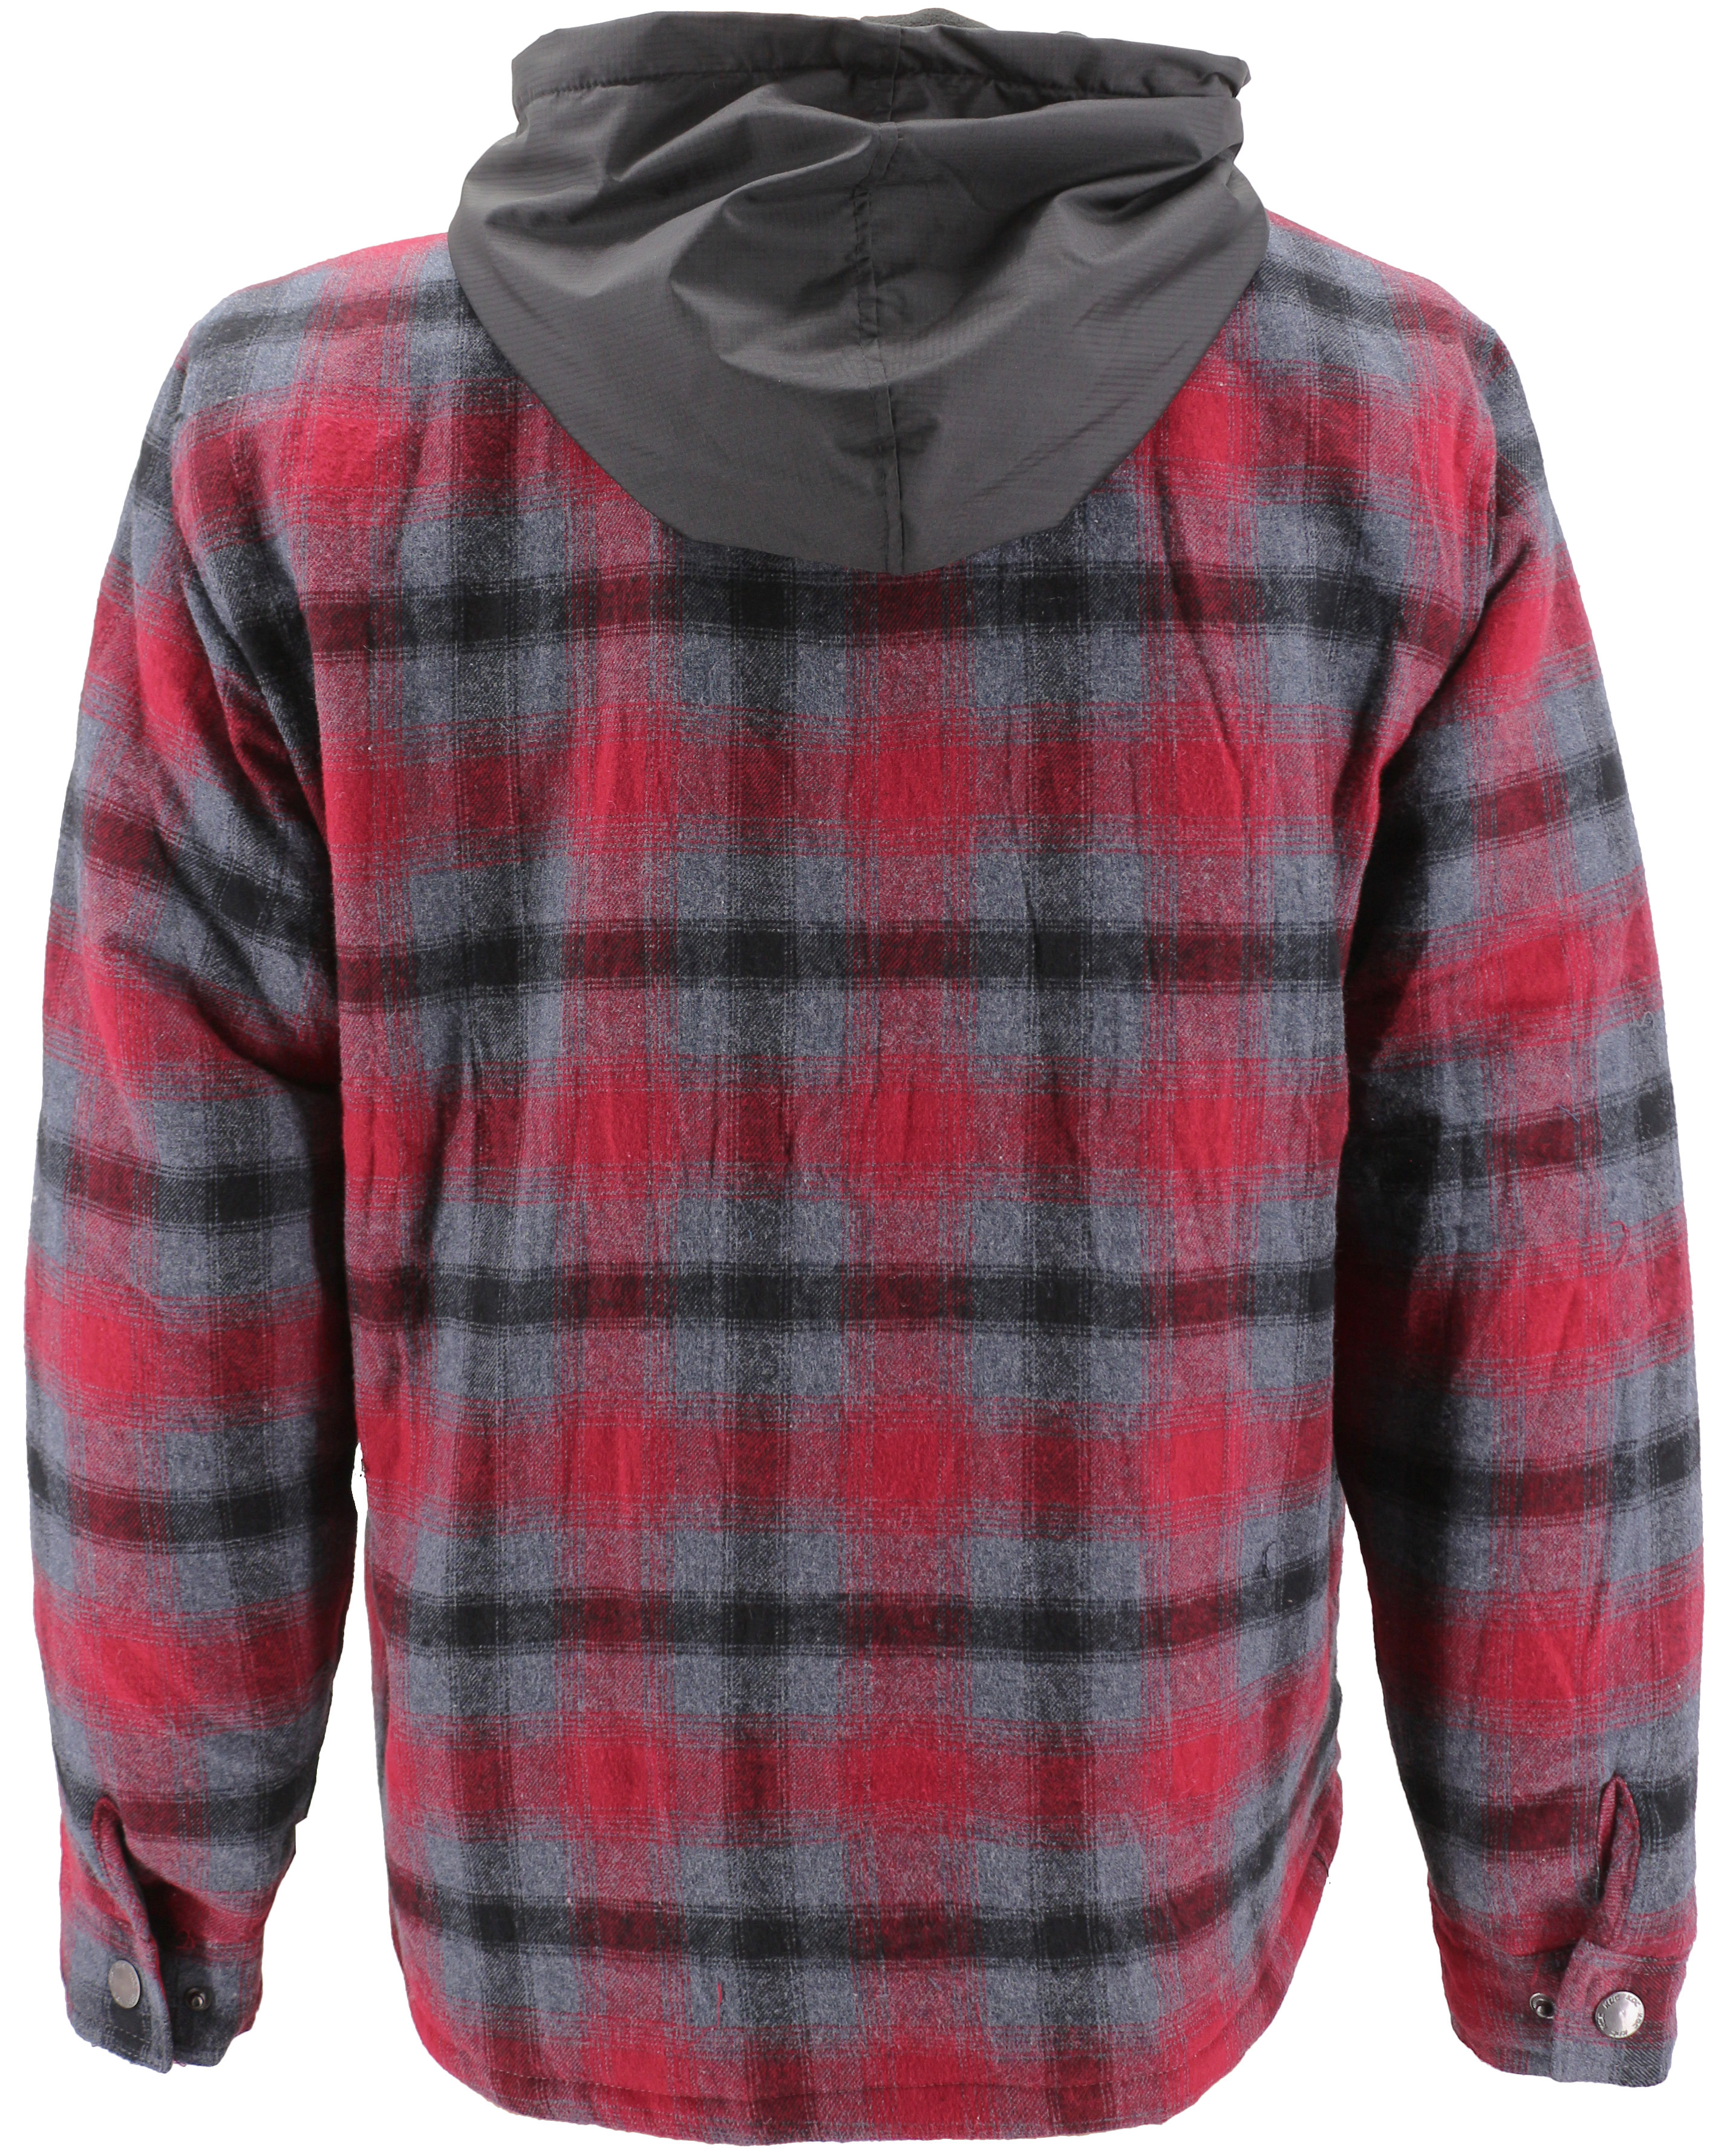 vkwear-Men-039-s-Quilted-Lined-Cotton-Plaid-Flannel-Layered-Zip-Up-Hoodie-Jacket thumbnail 13